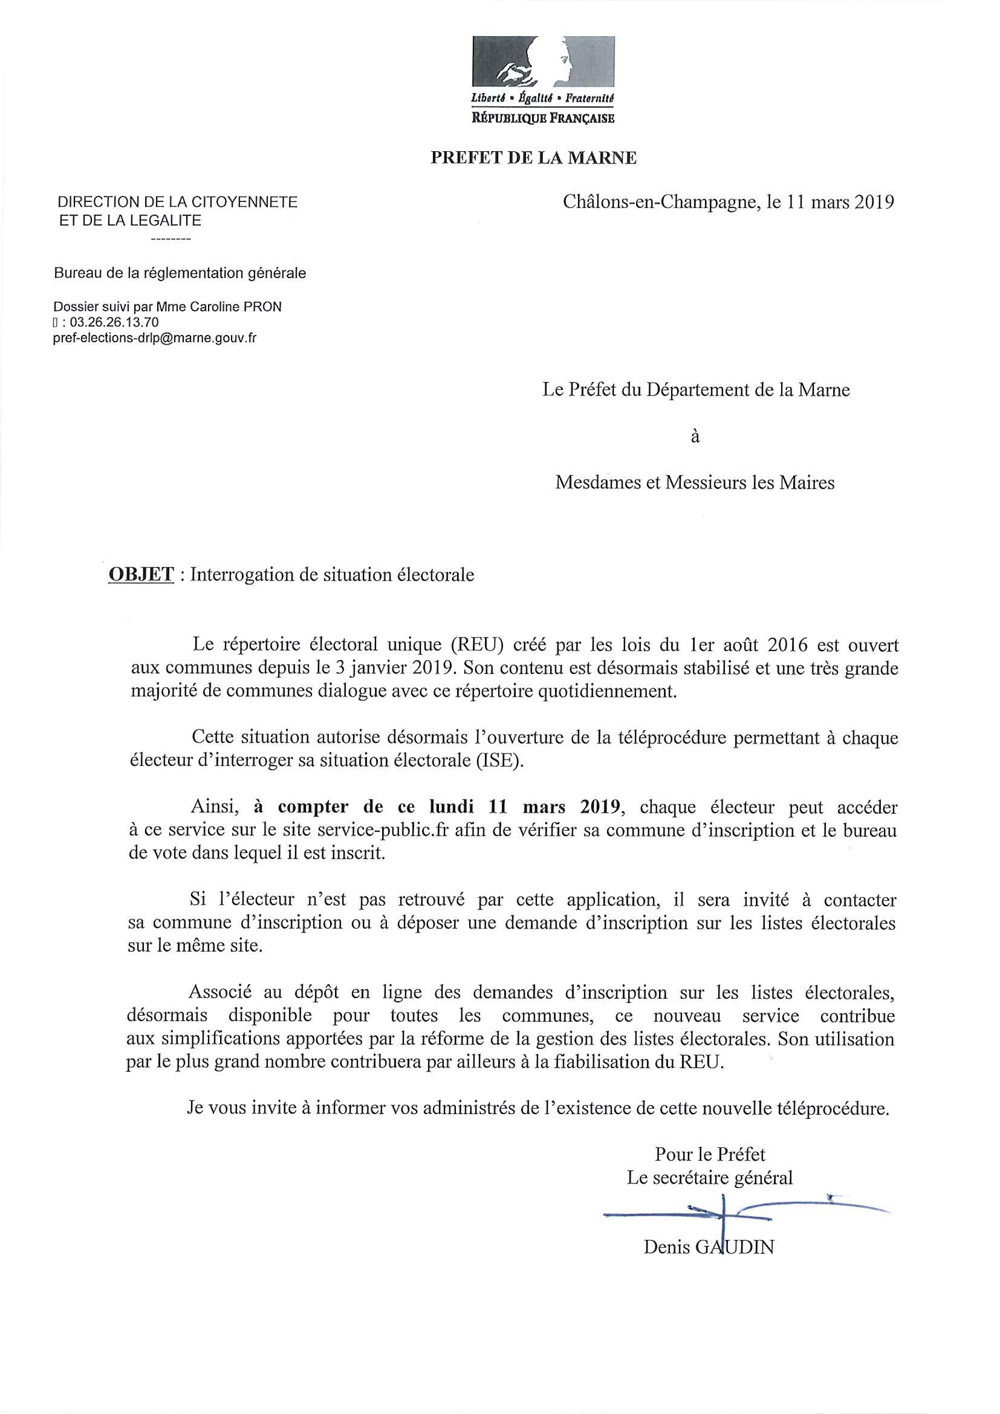 Courrier information ouverture ISE